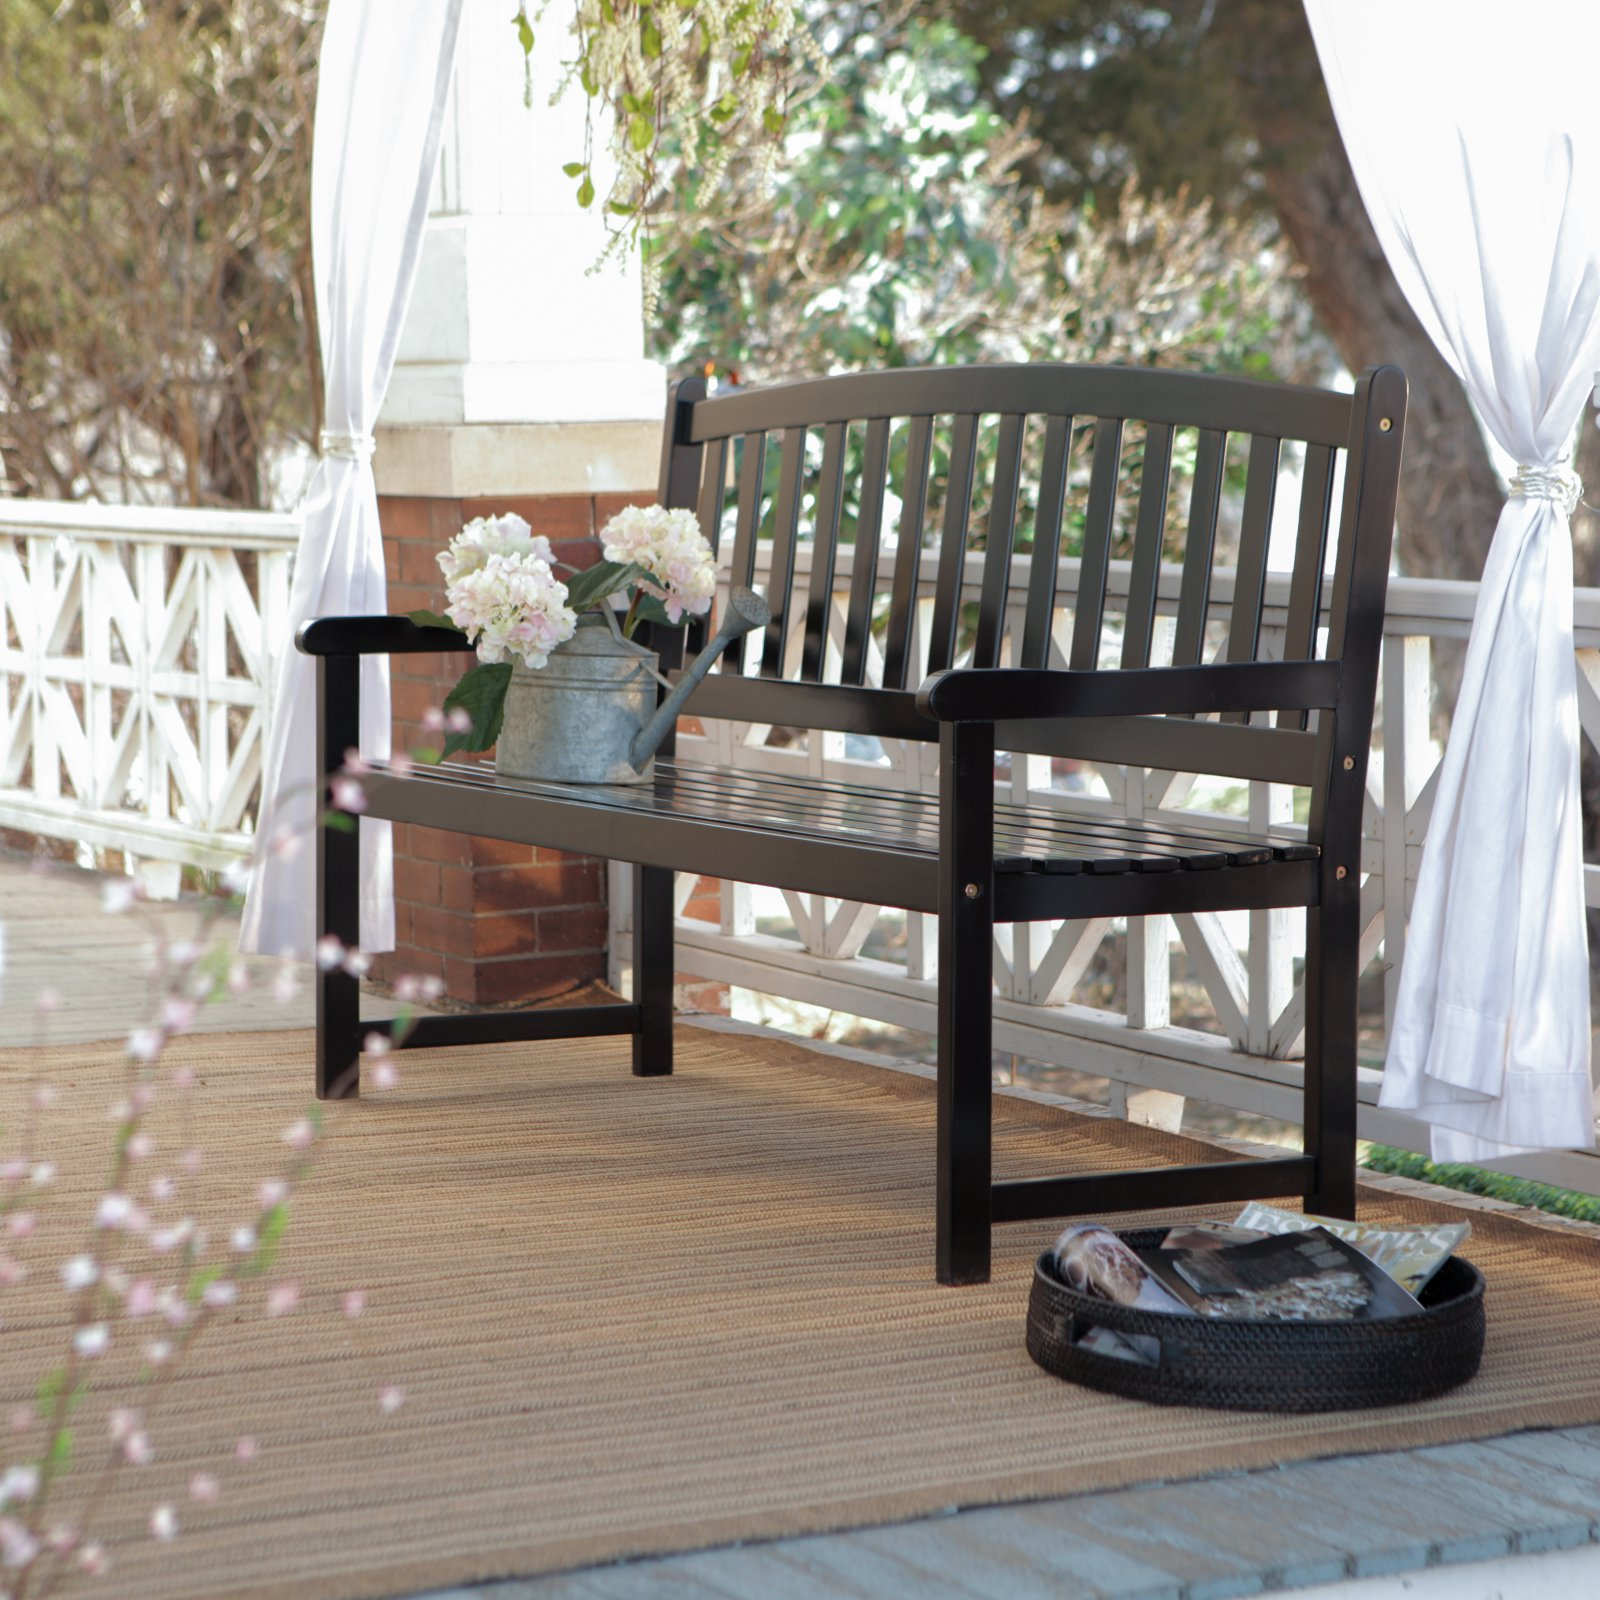 Coral Coast Pleasant Bay 5 ft. Slat Curved-Back Outdoor Wood Bench Black by Nghia Son Wooden Furniture Co